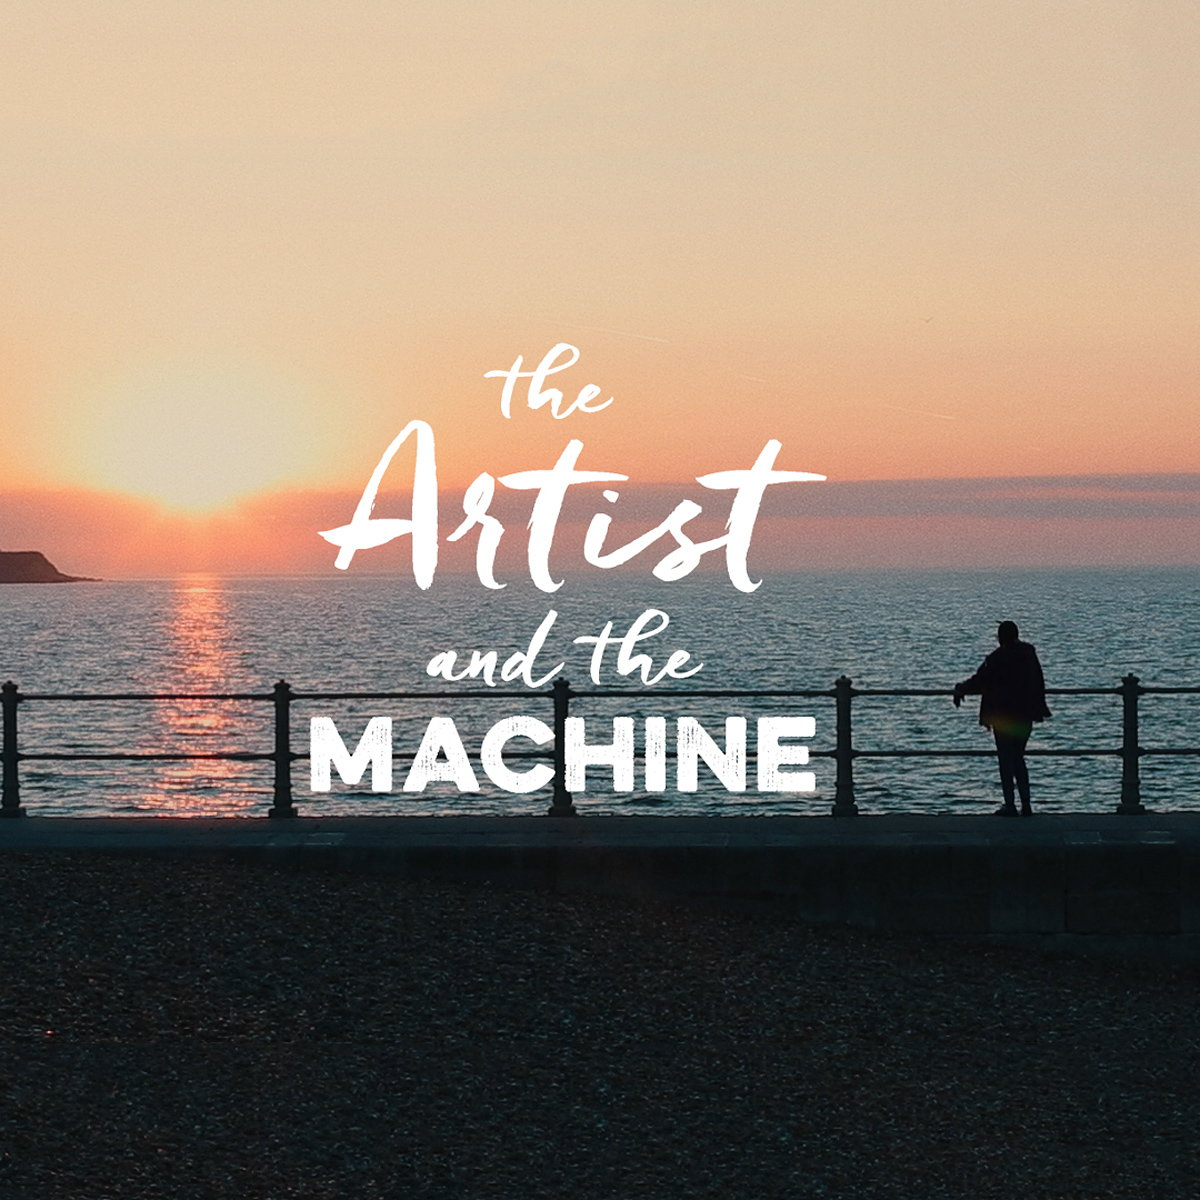 The Artist and the Machine